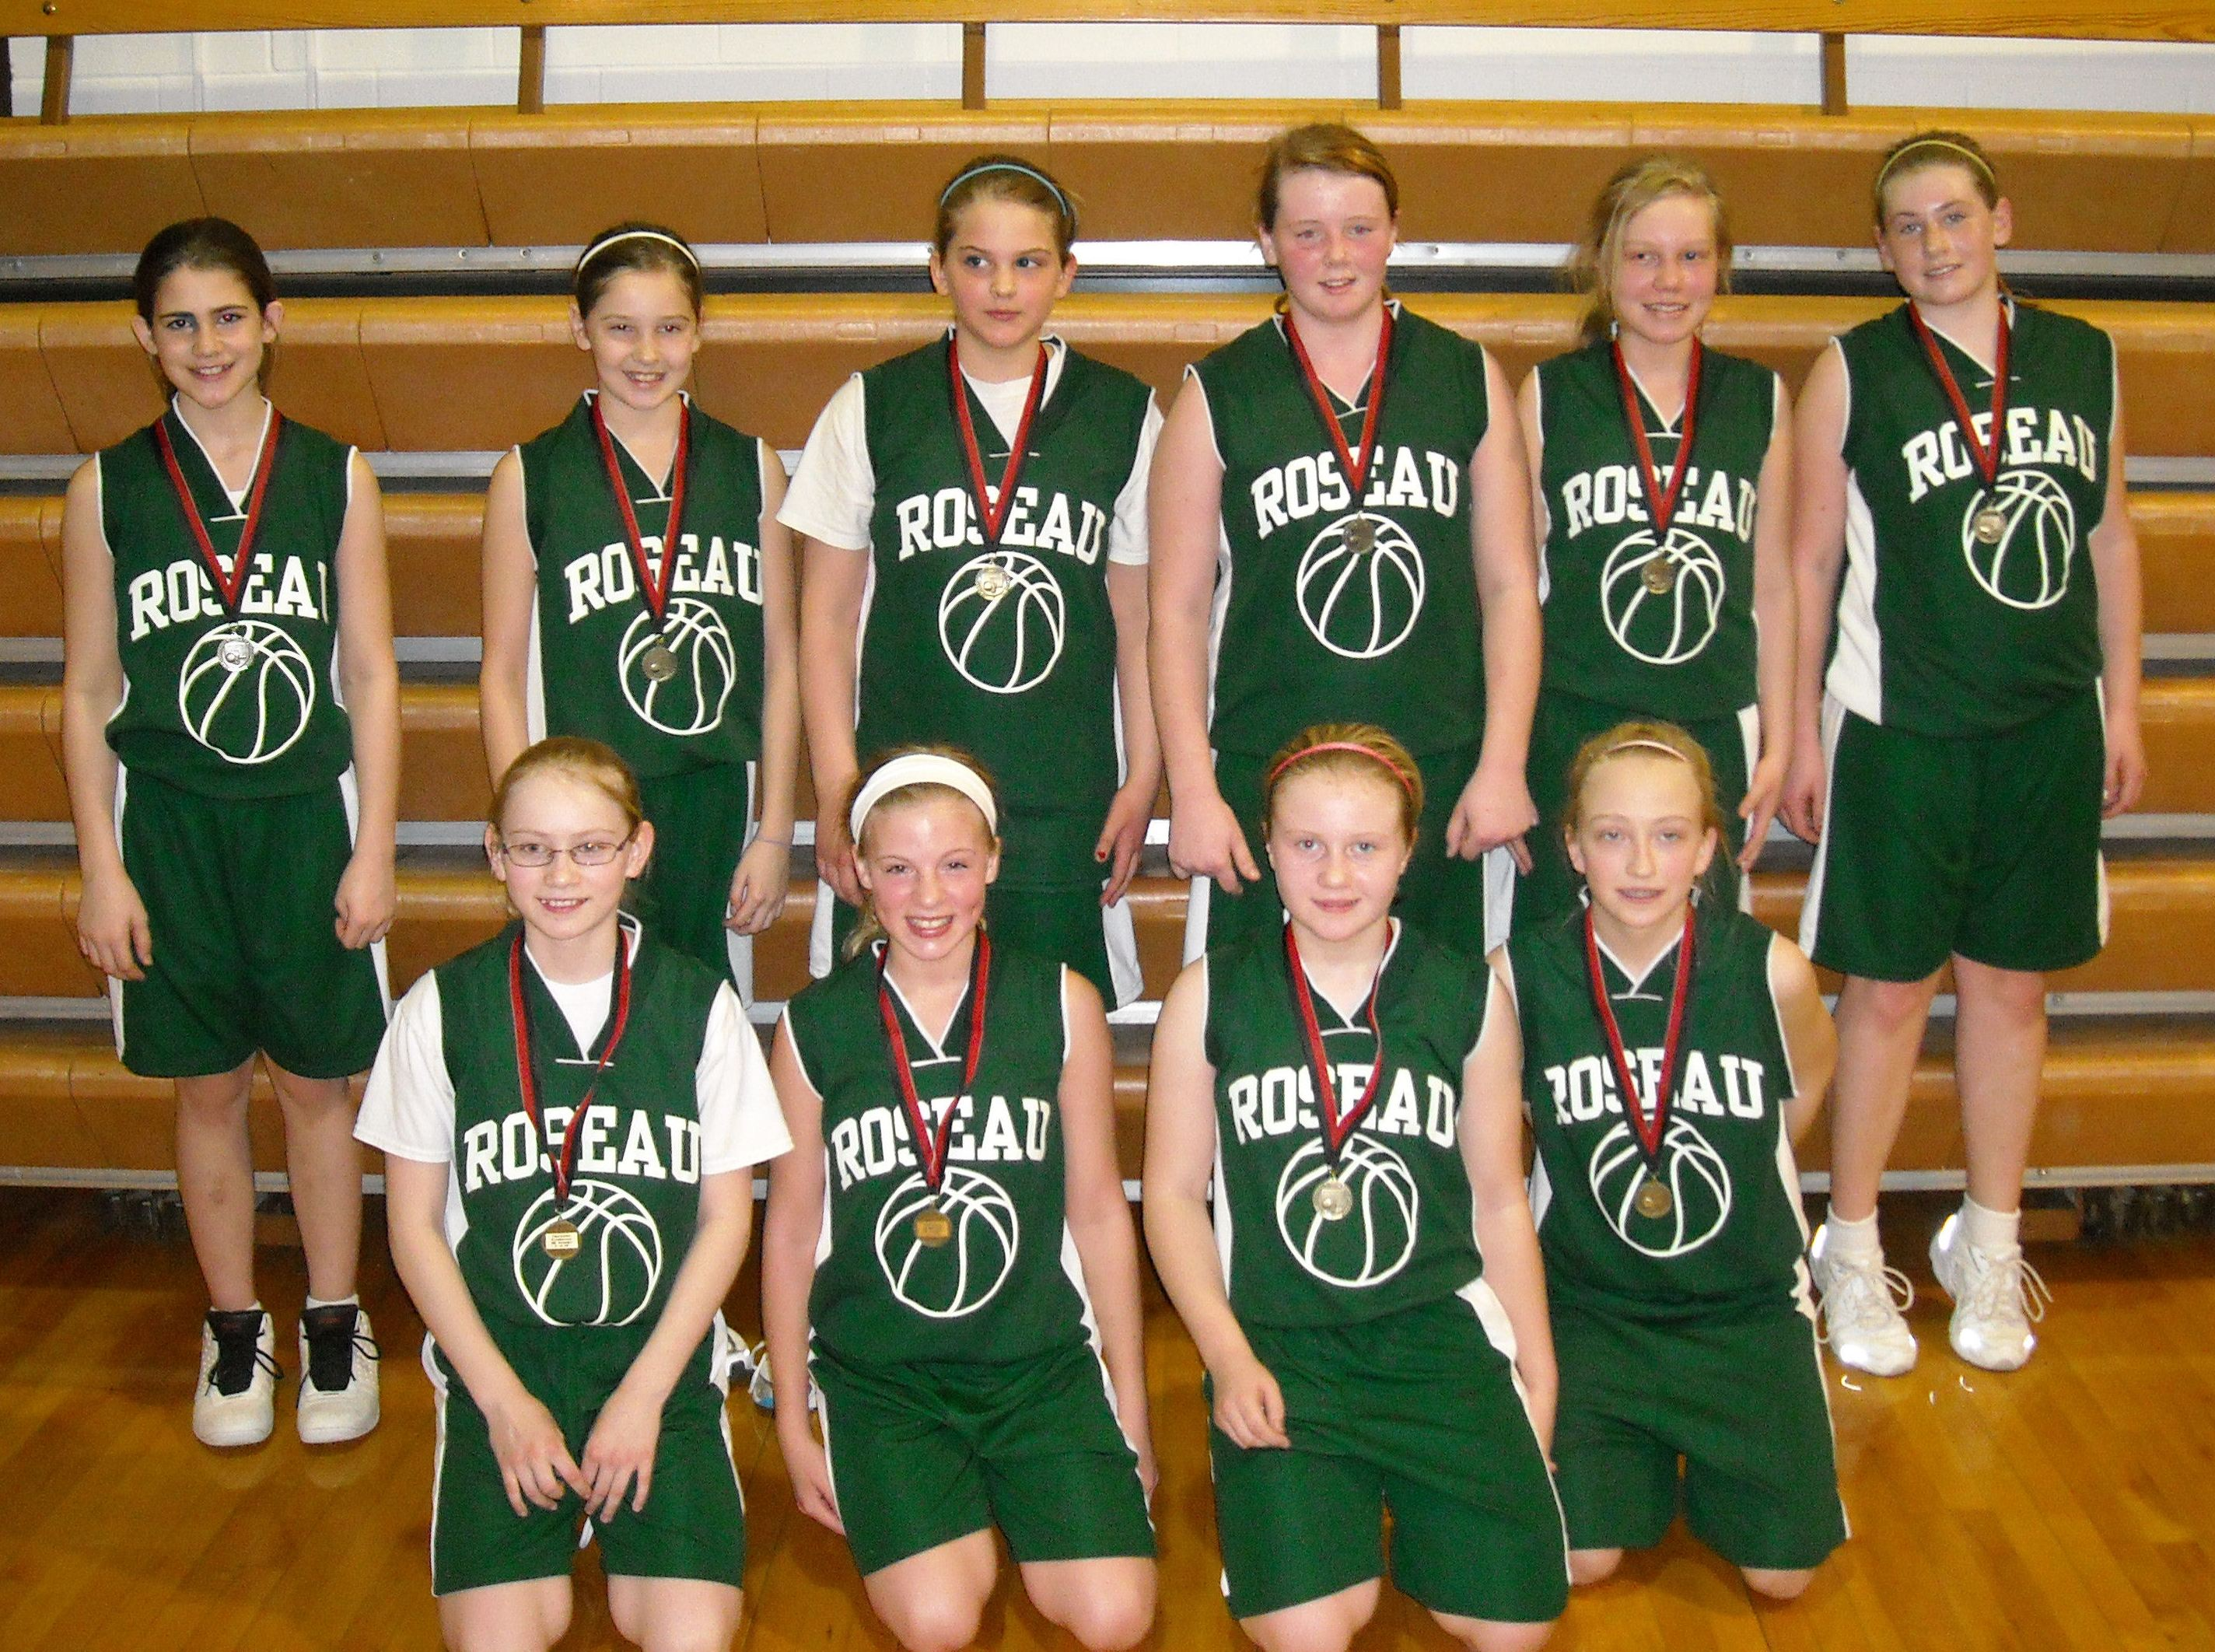 6th grade roseau team #1